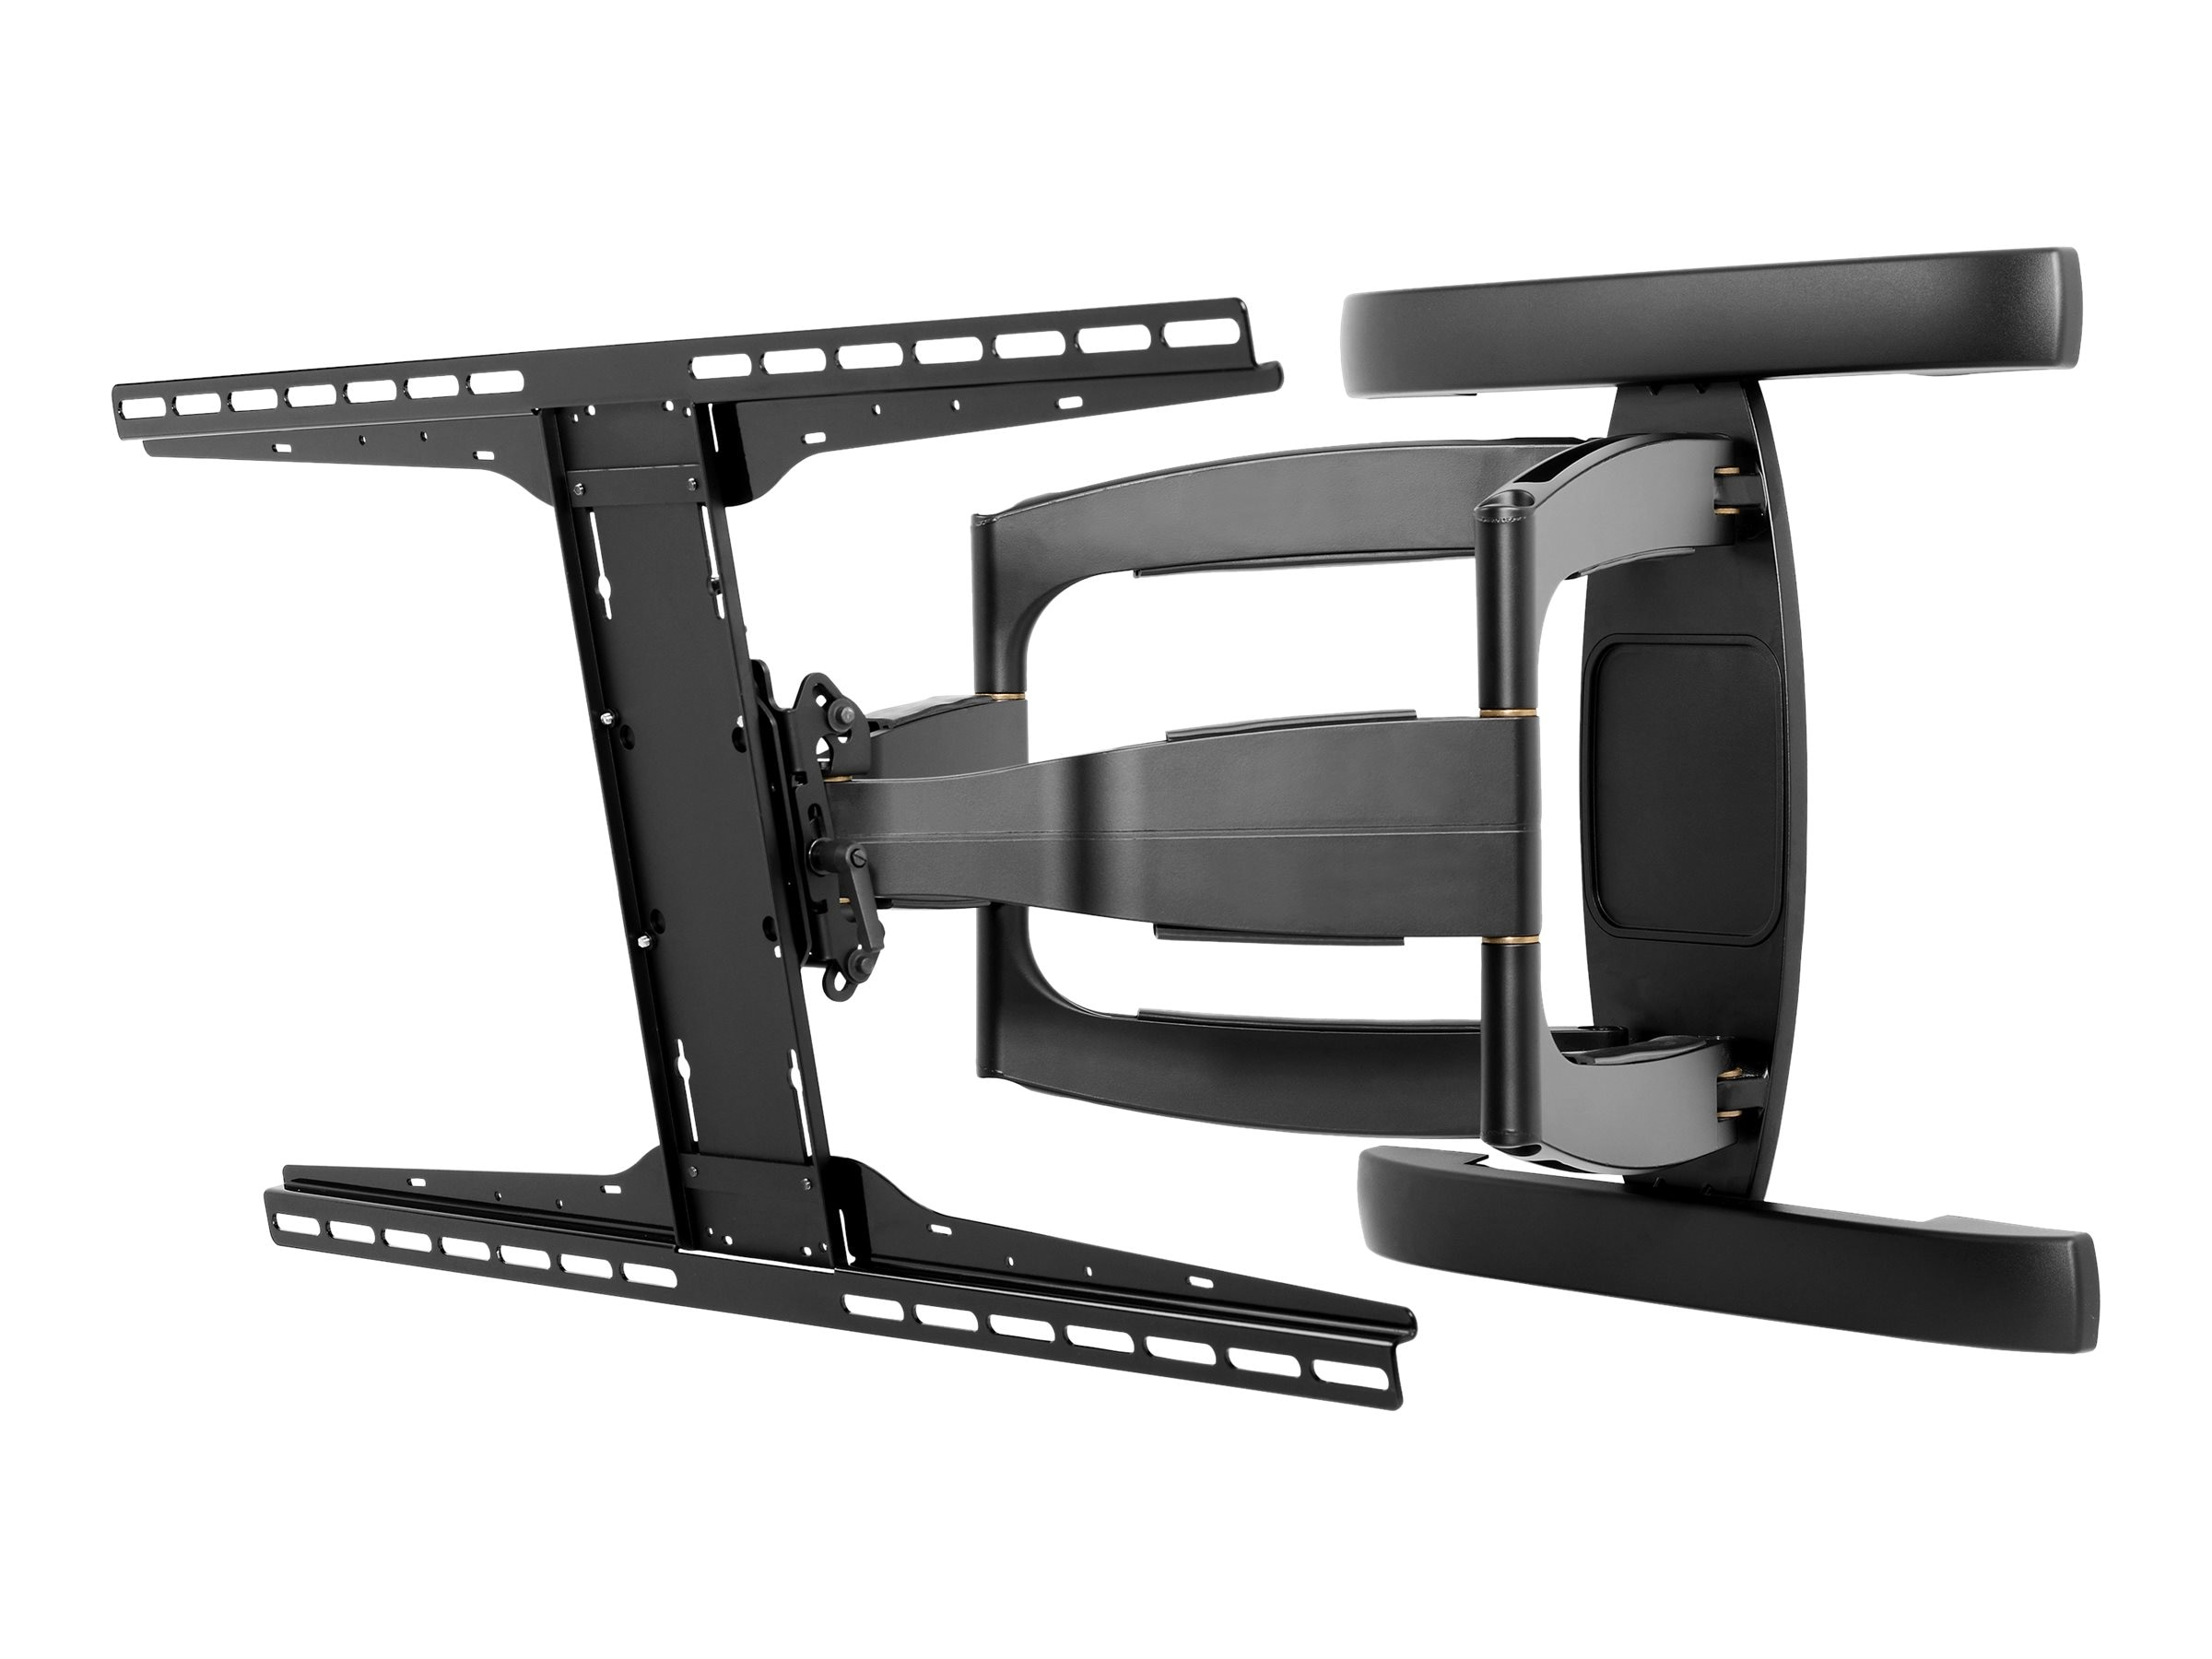 Peerless SmartMount Articulating Wall Arm for 46-90 Displays, SA771PU, 11120972, Stands & Mounts - AV